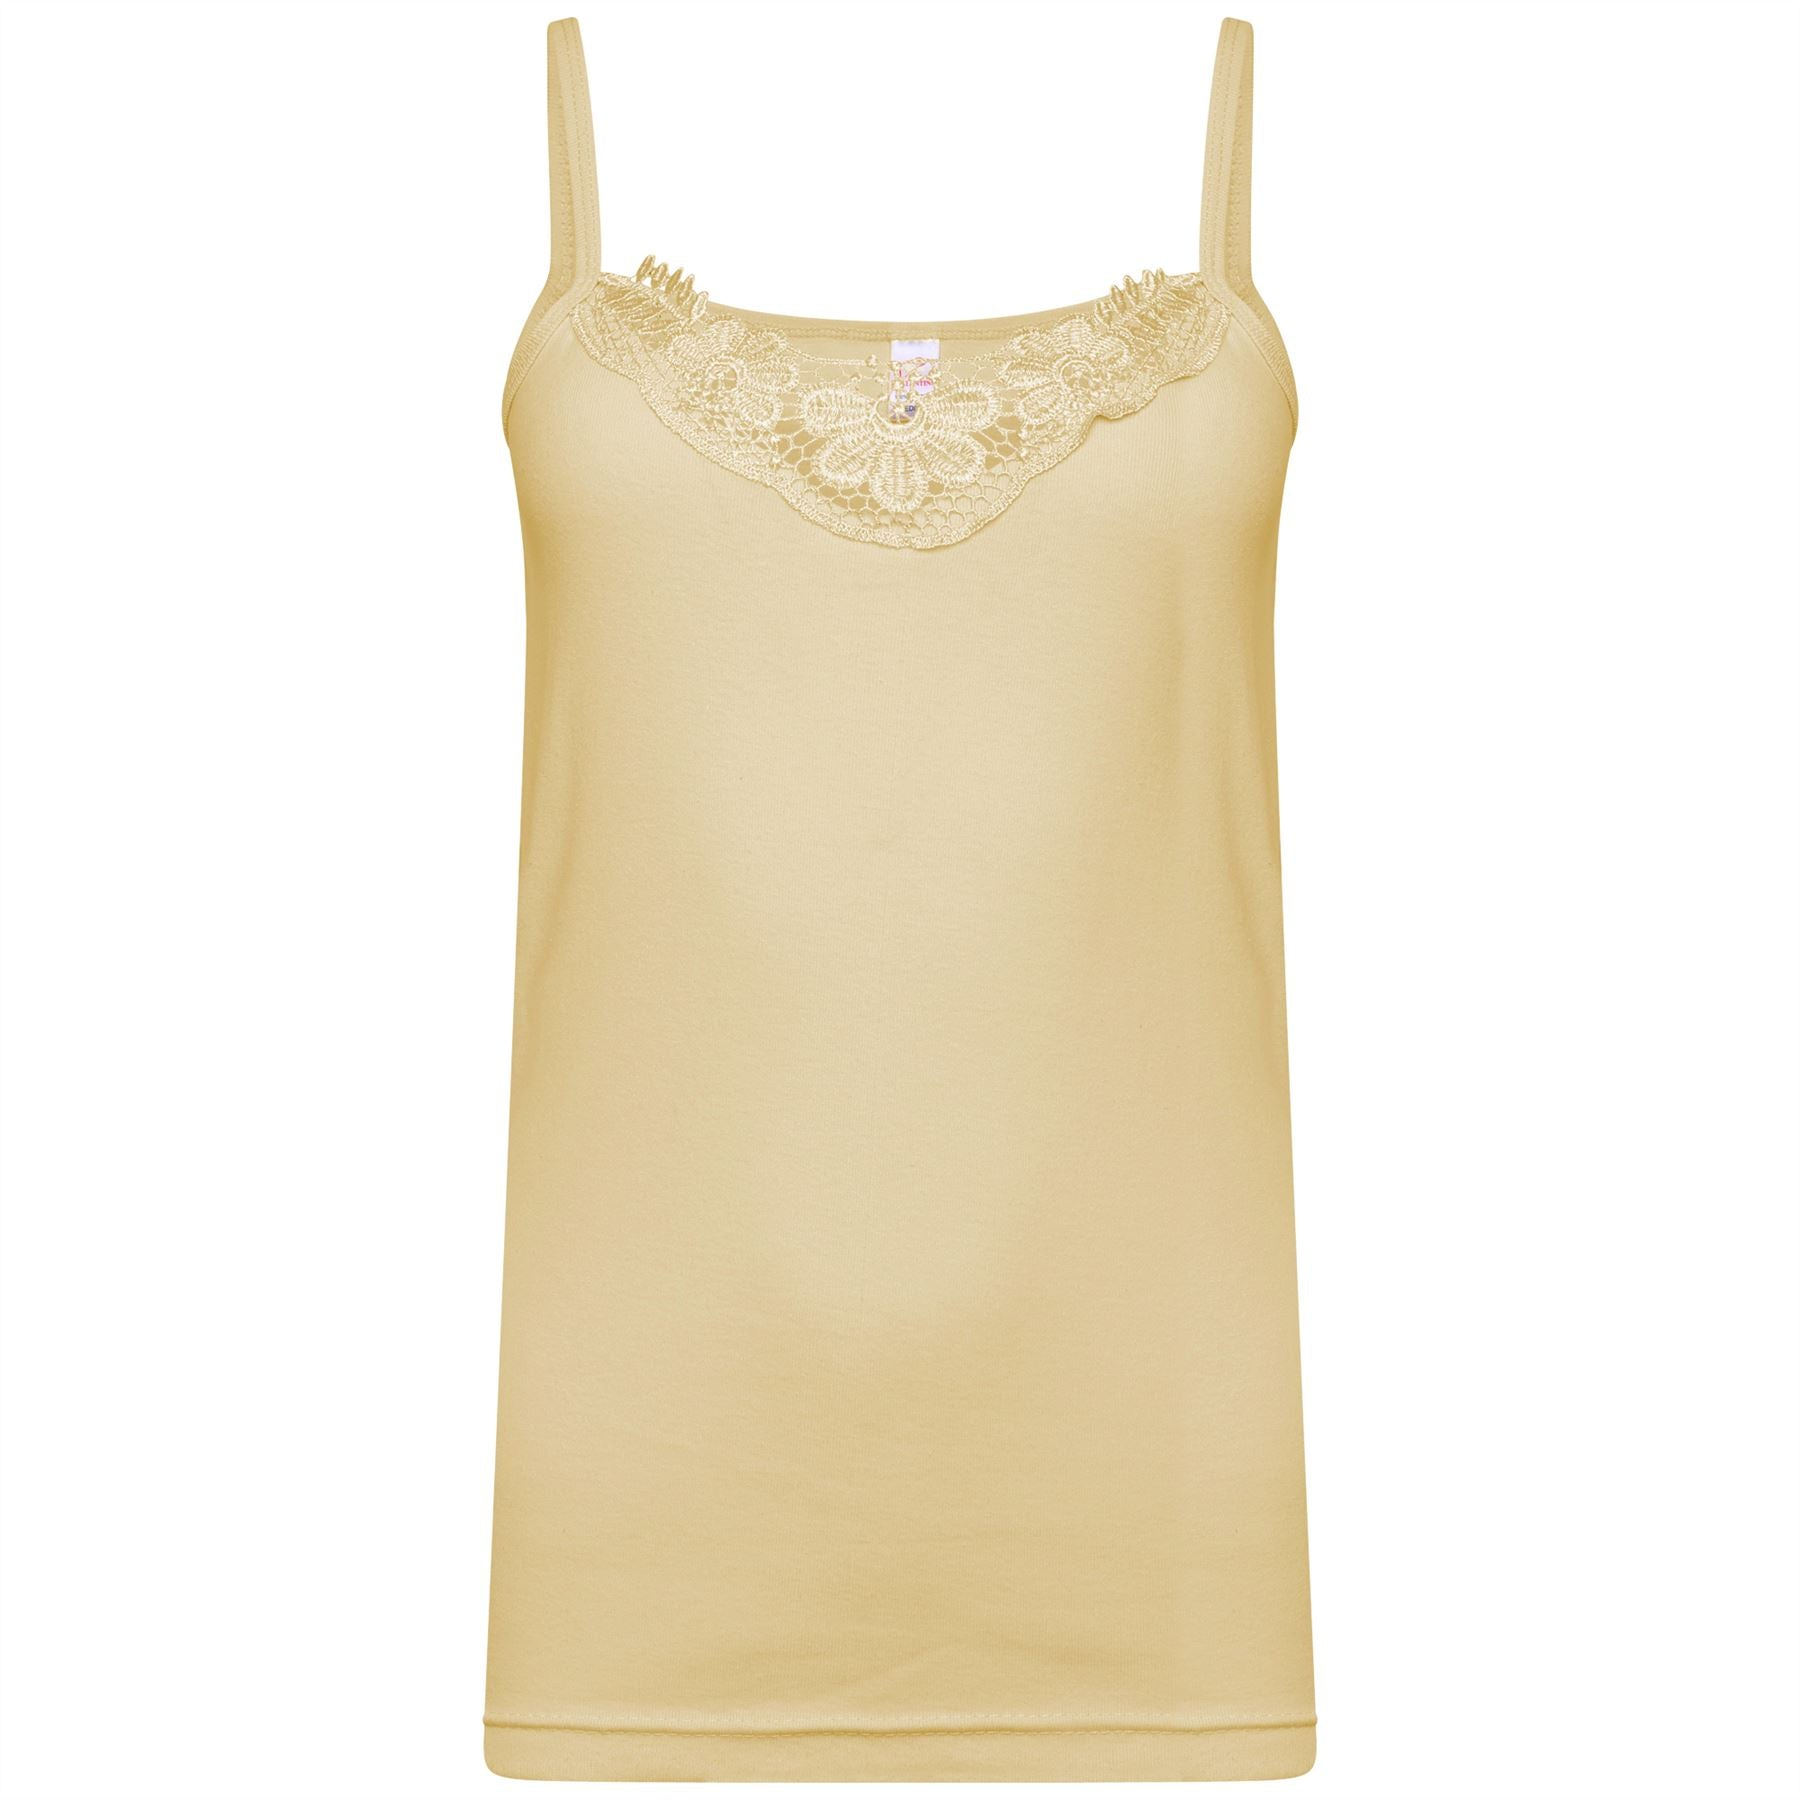 Ladies Plain Cotton Vest Top Lace Trim Neck Design Cami Tank Strappy Camisole